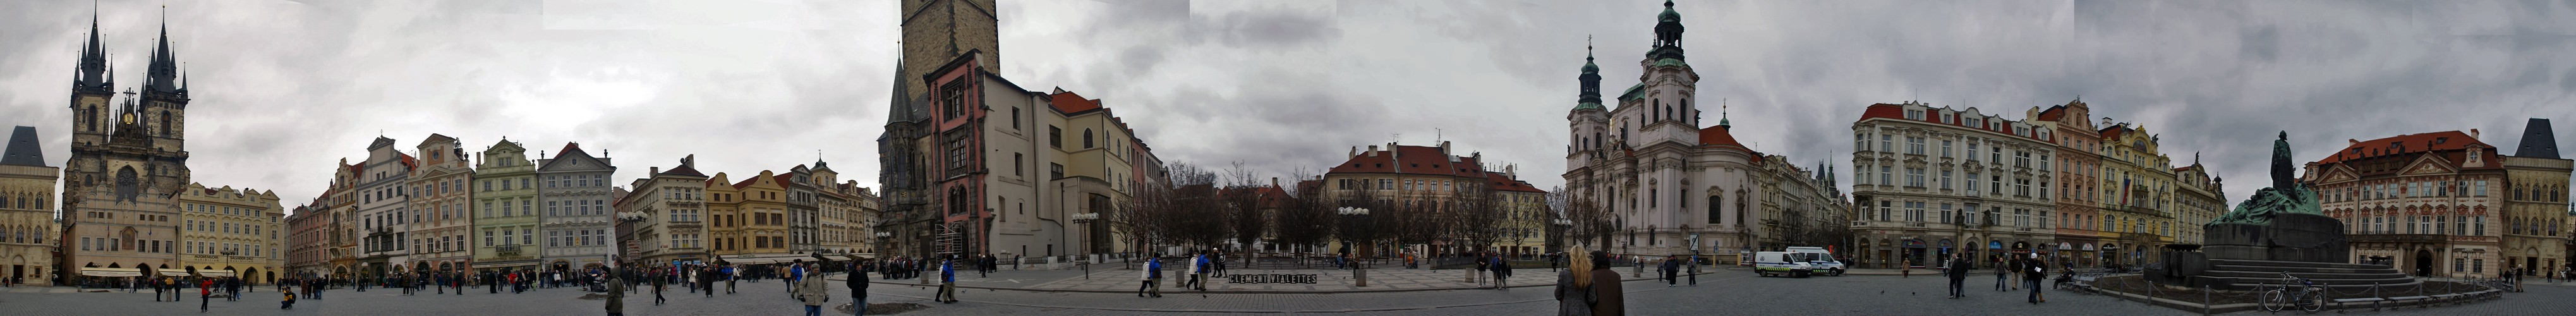 2010-03-prague-place-de-la-vieille -ville-panoramique.jpg